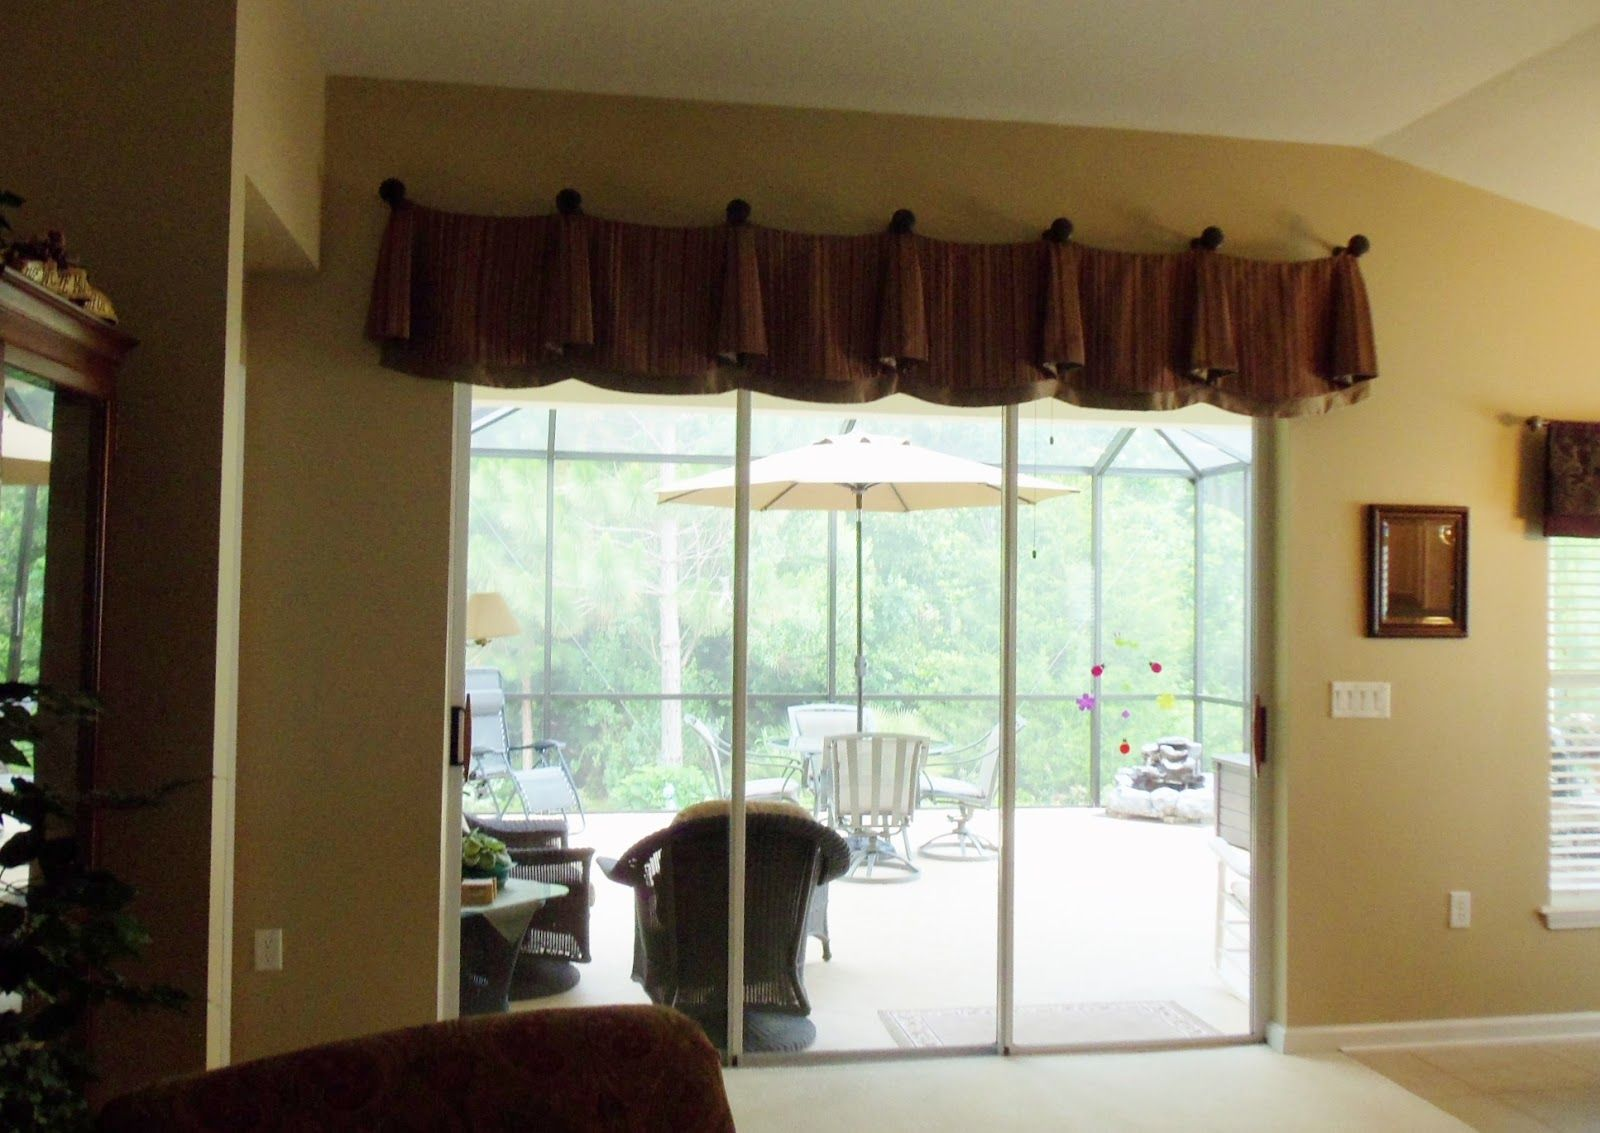 Window coverings for sliding doors  image result for window treatment for large patio doors  window